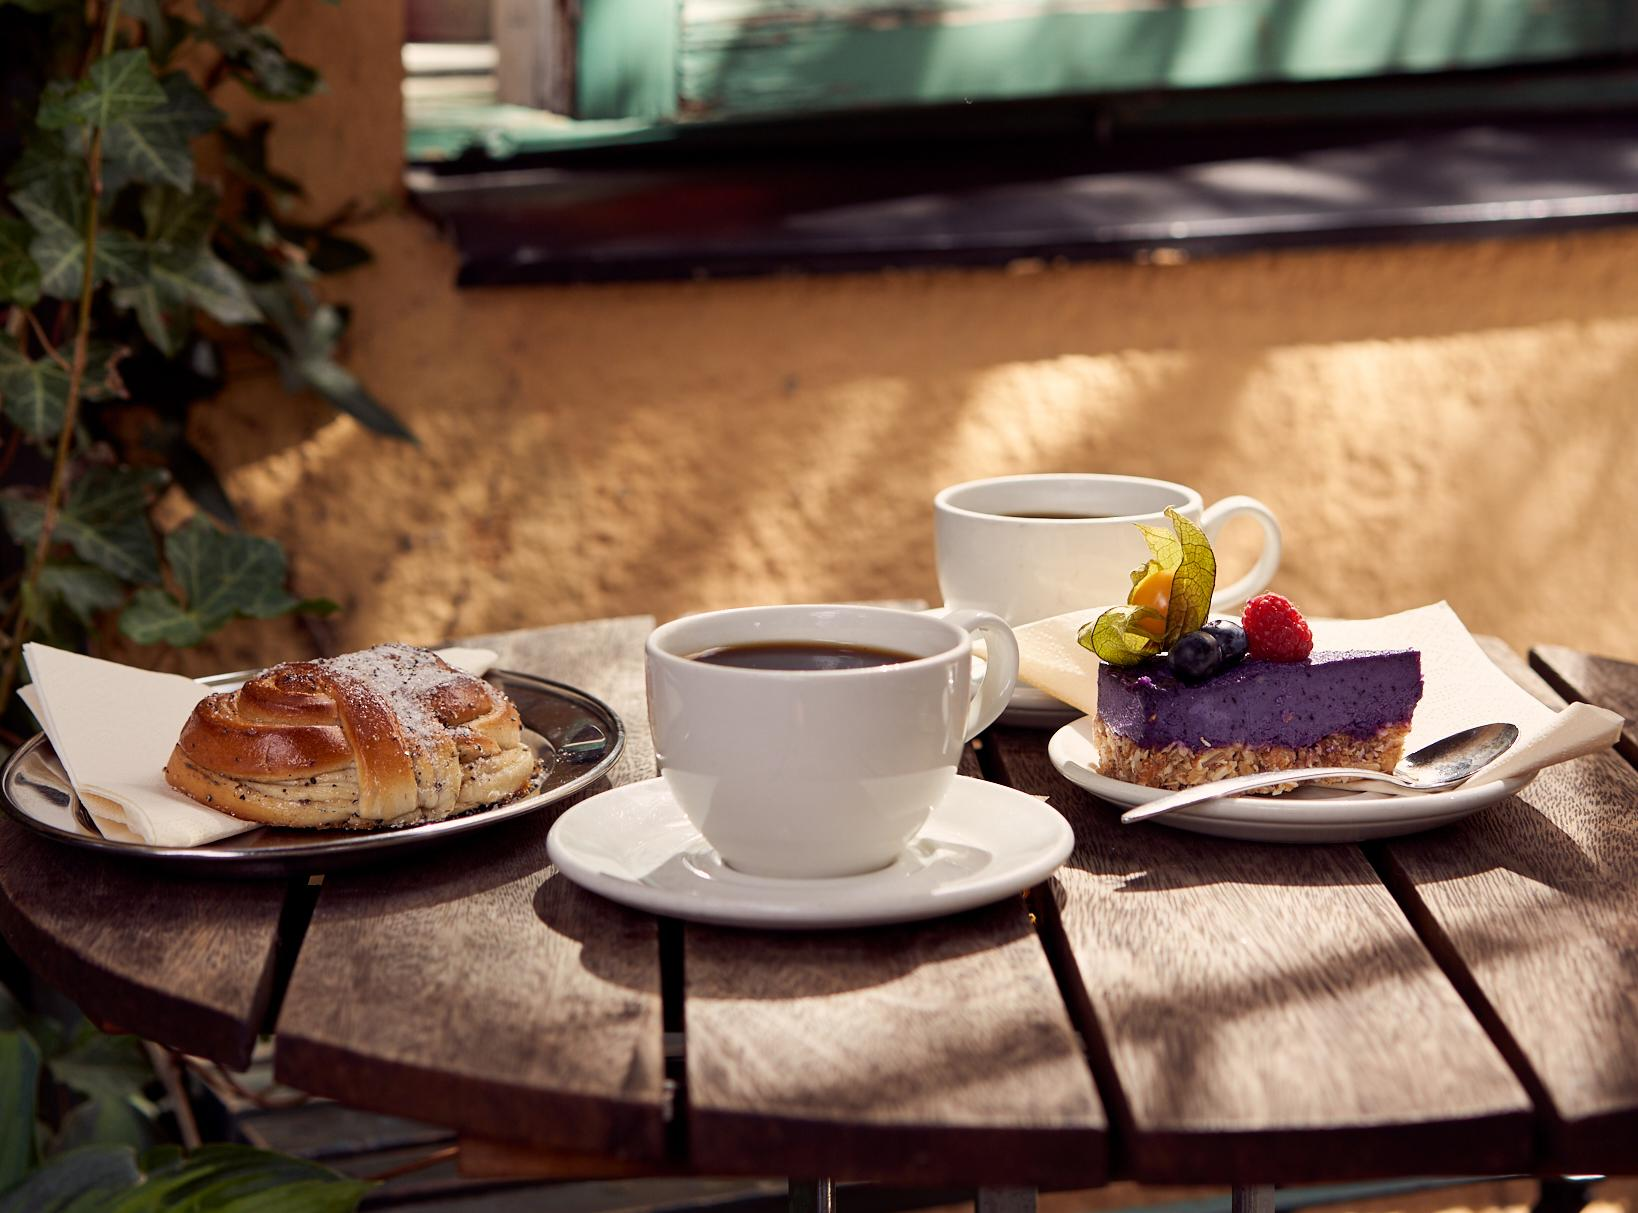 Coffee cup and cakes on outdoor café table